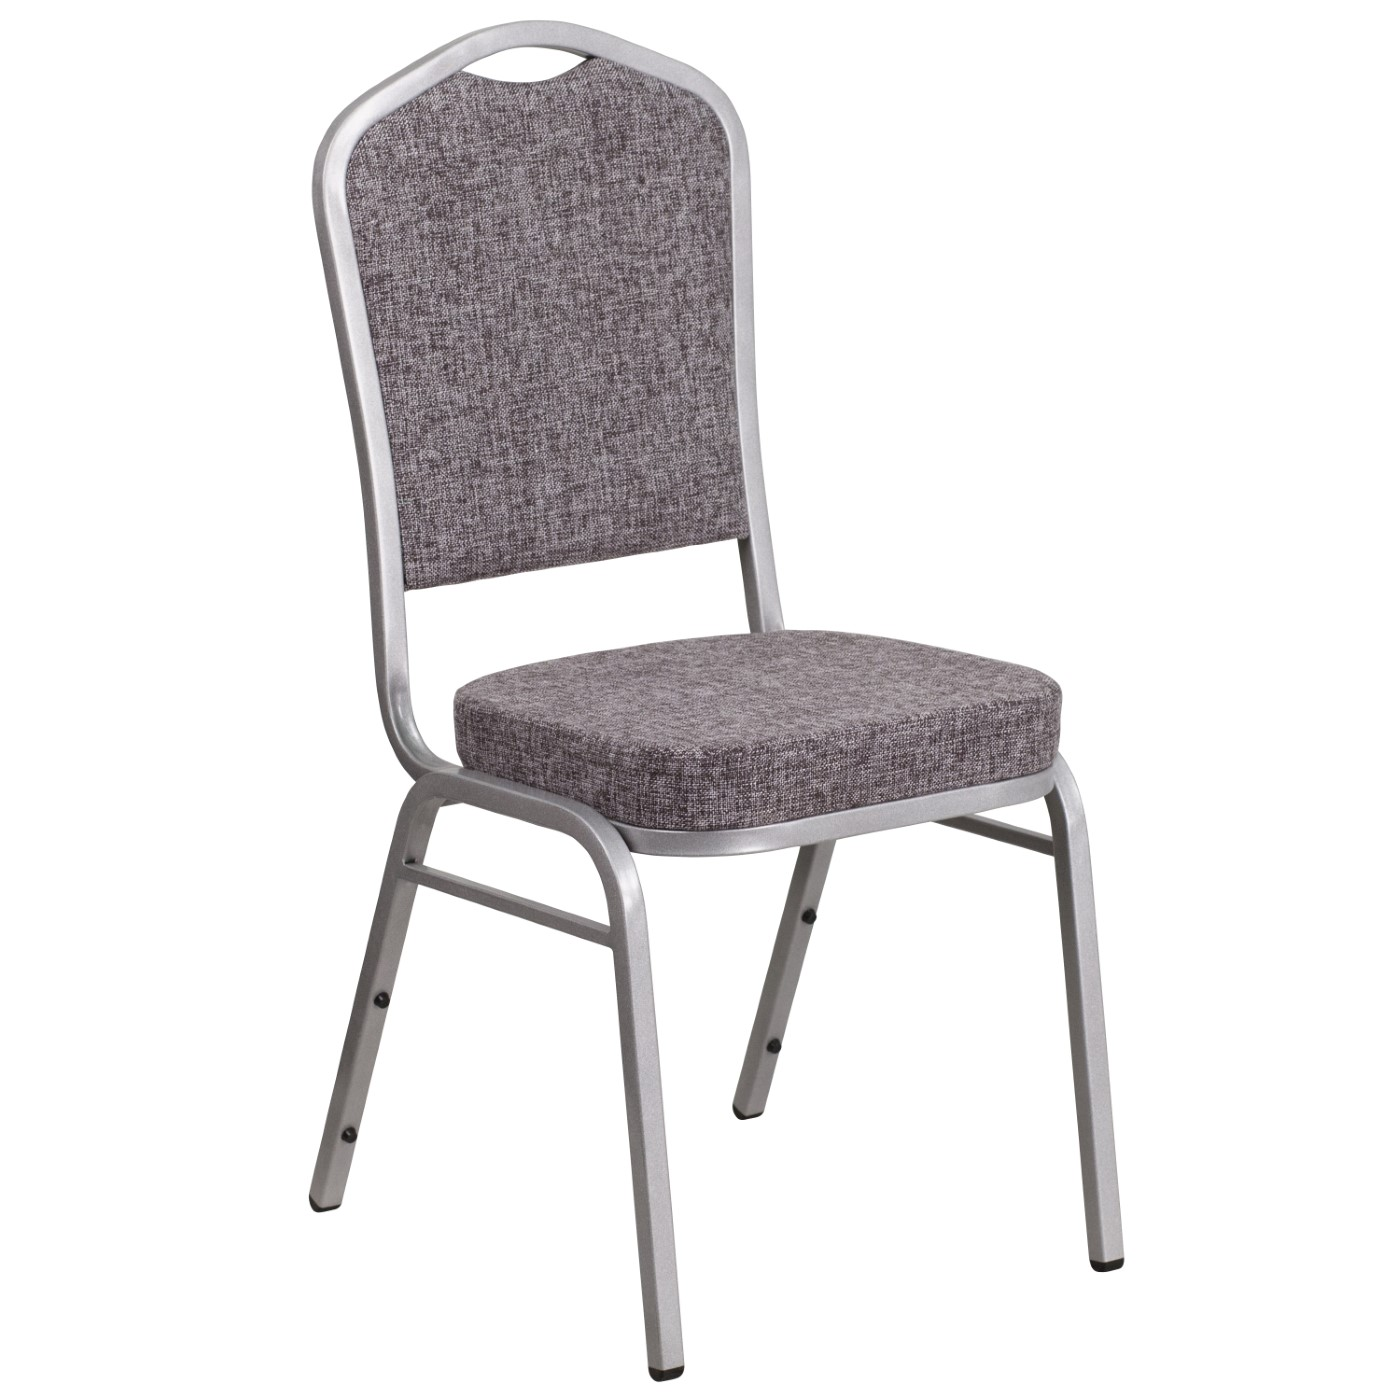 TOUGH ENOUGH Series Crown Back Stacking Banquet Chair in Herringbone Fabric - Silver Frame